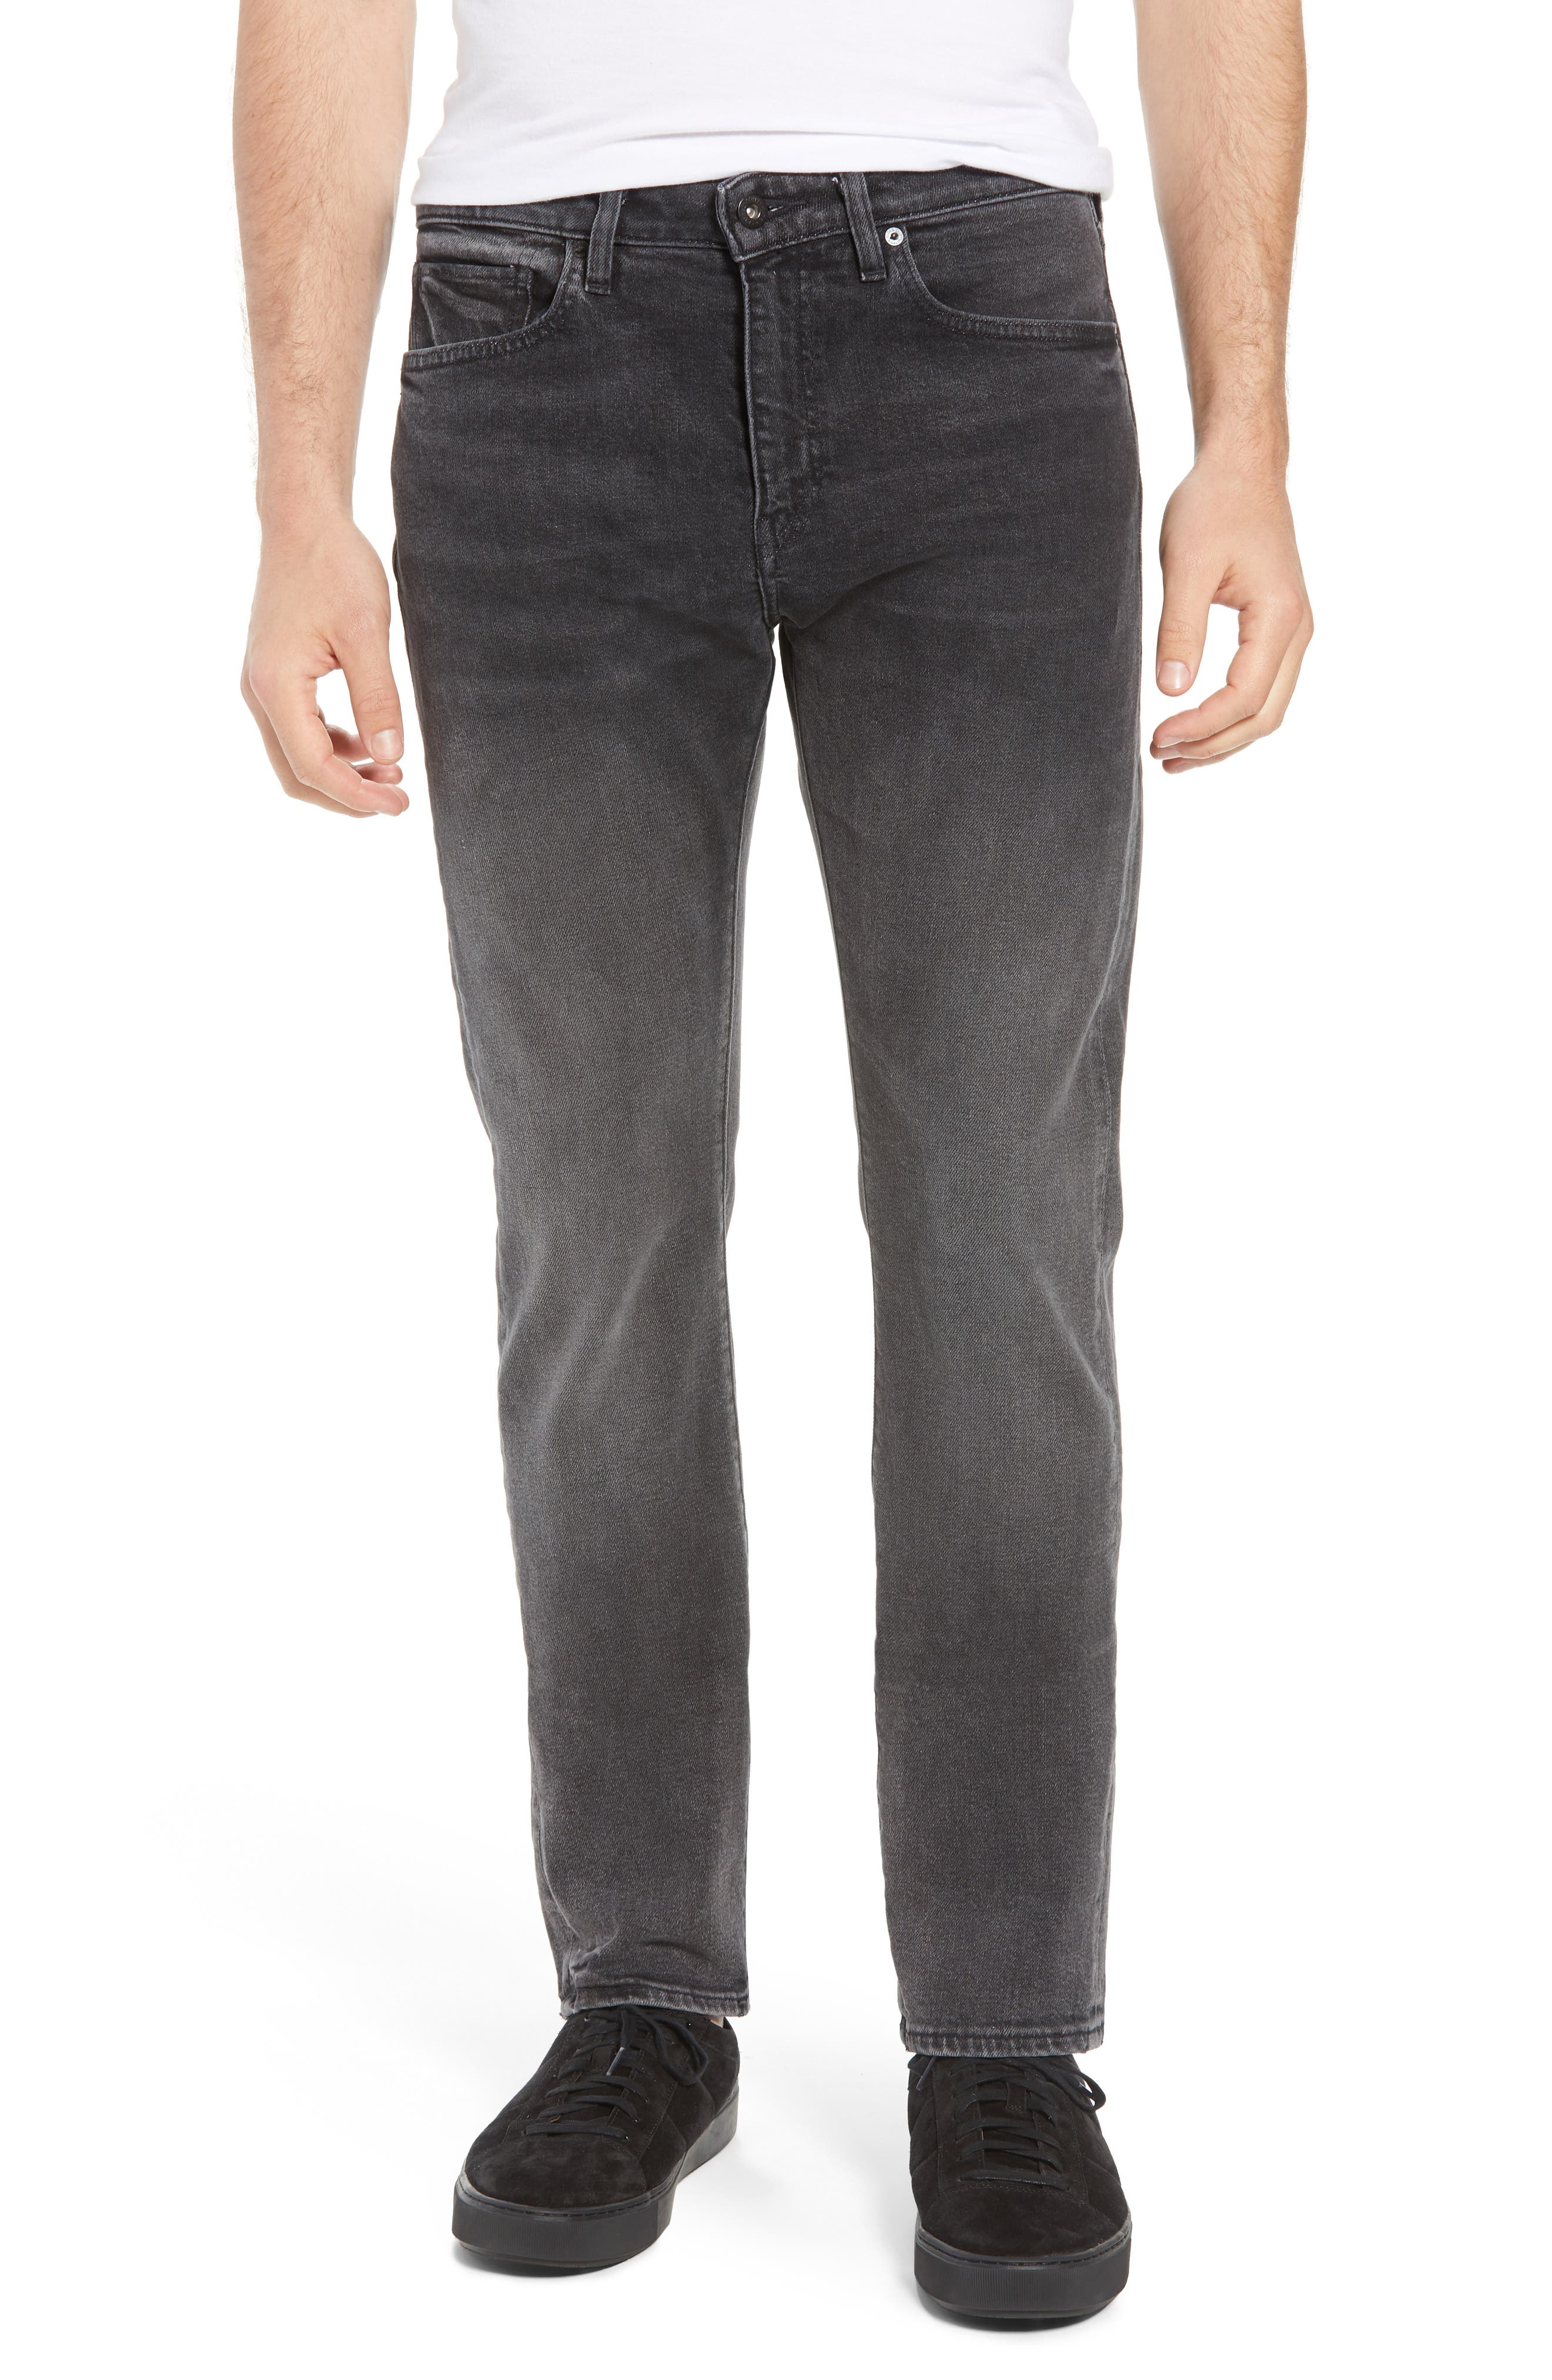 Tack Slim Fit Jeans,                         Main,                         color, BLACK ICE